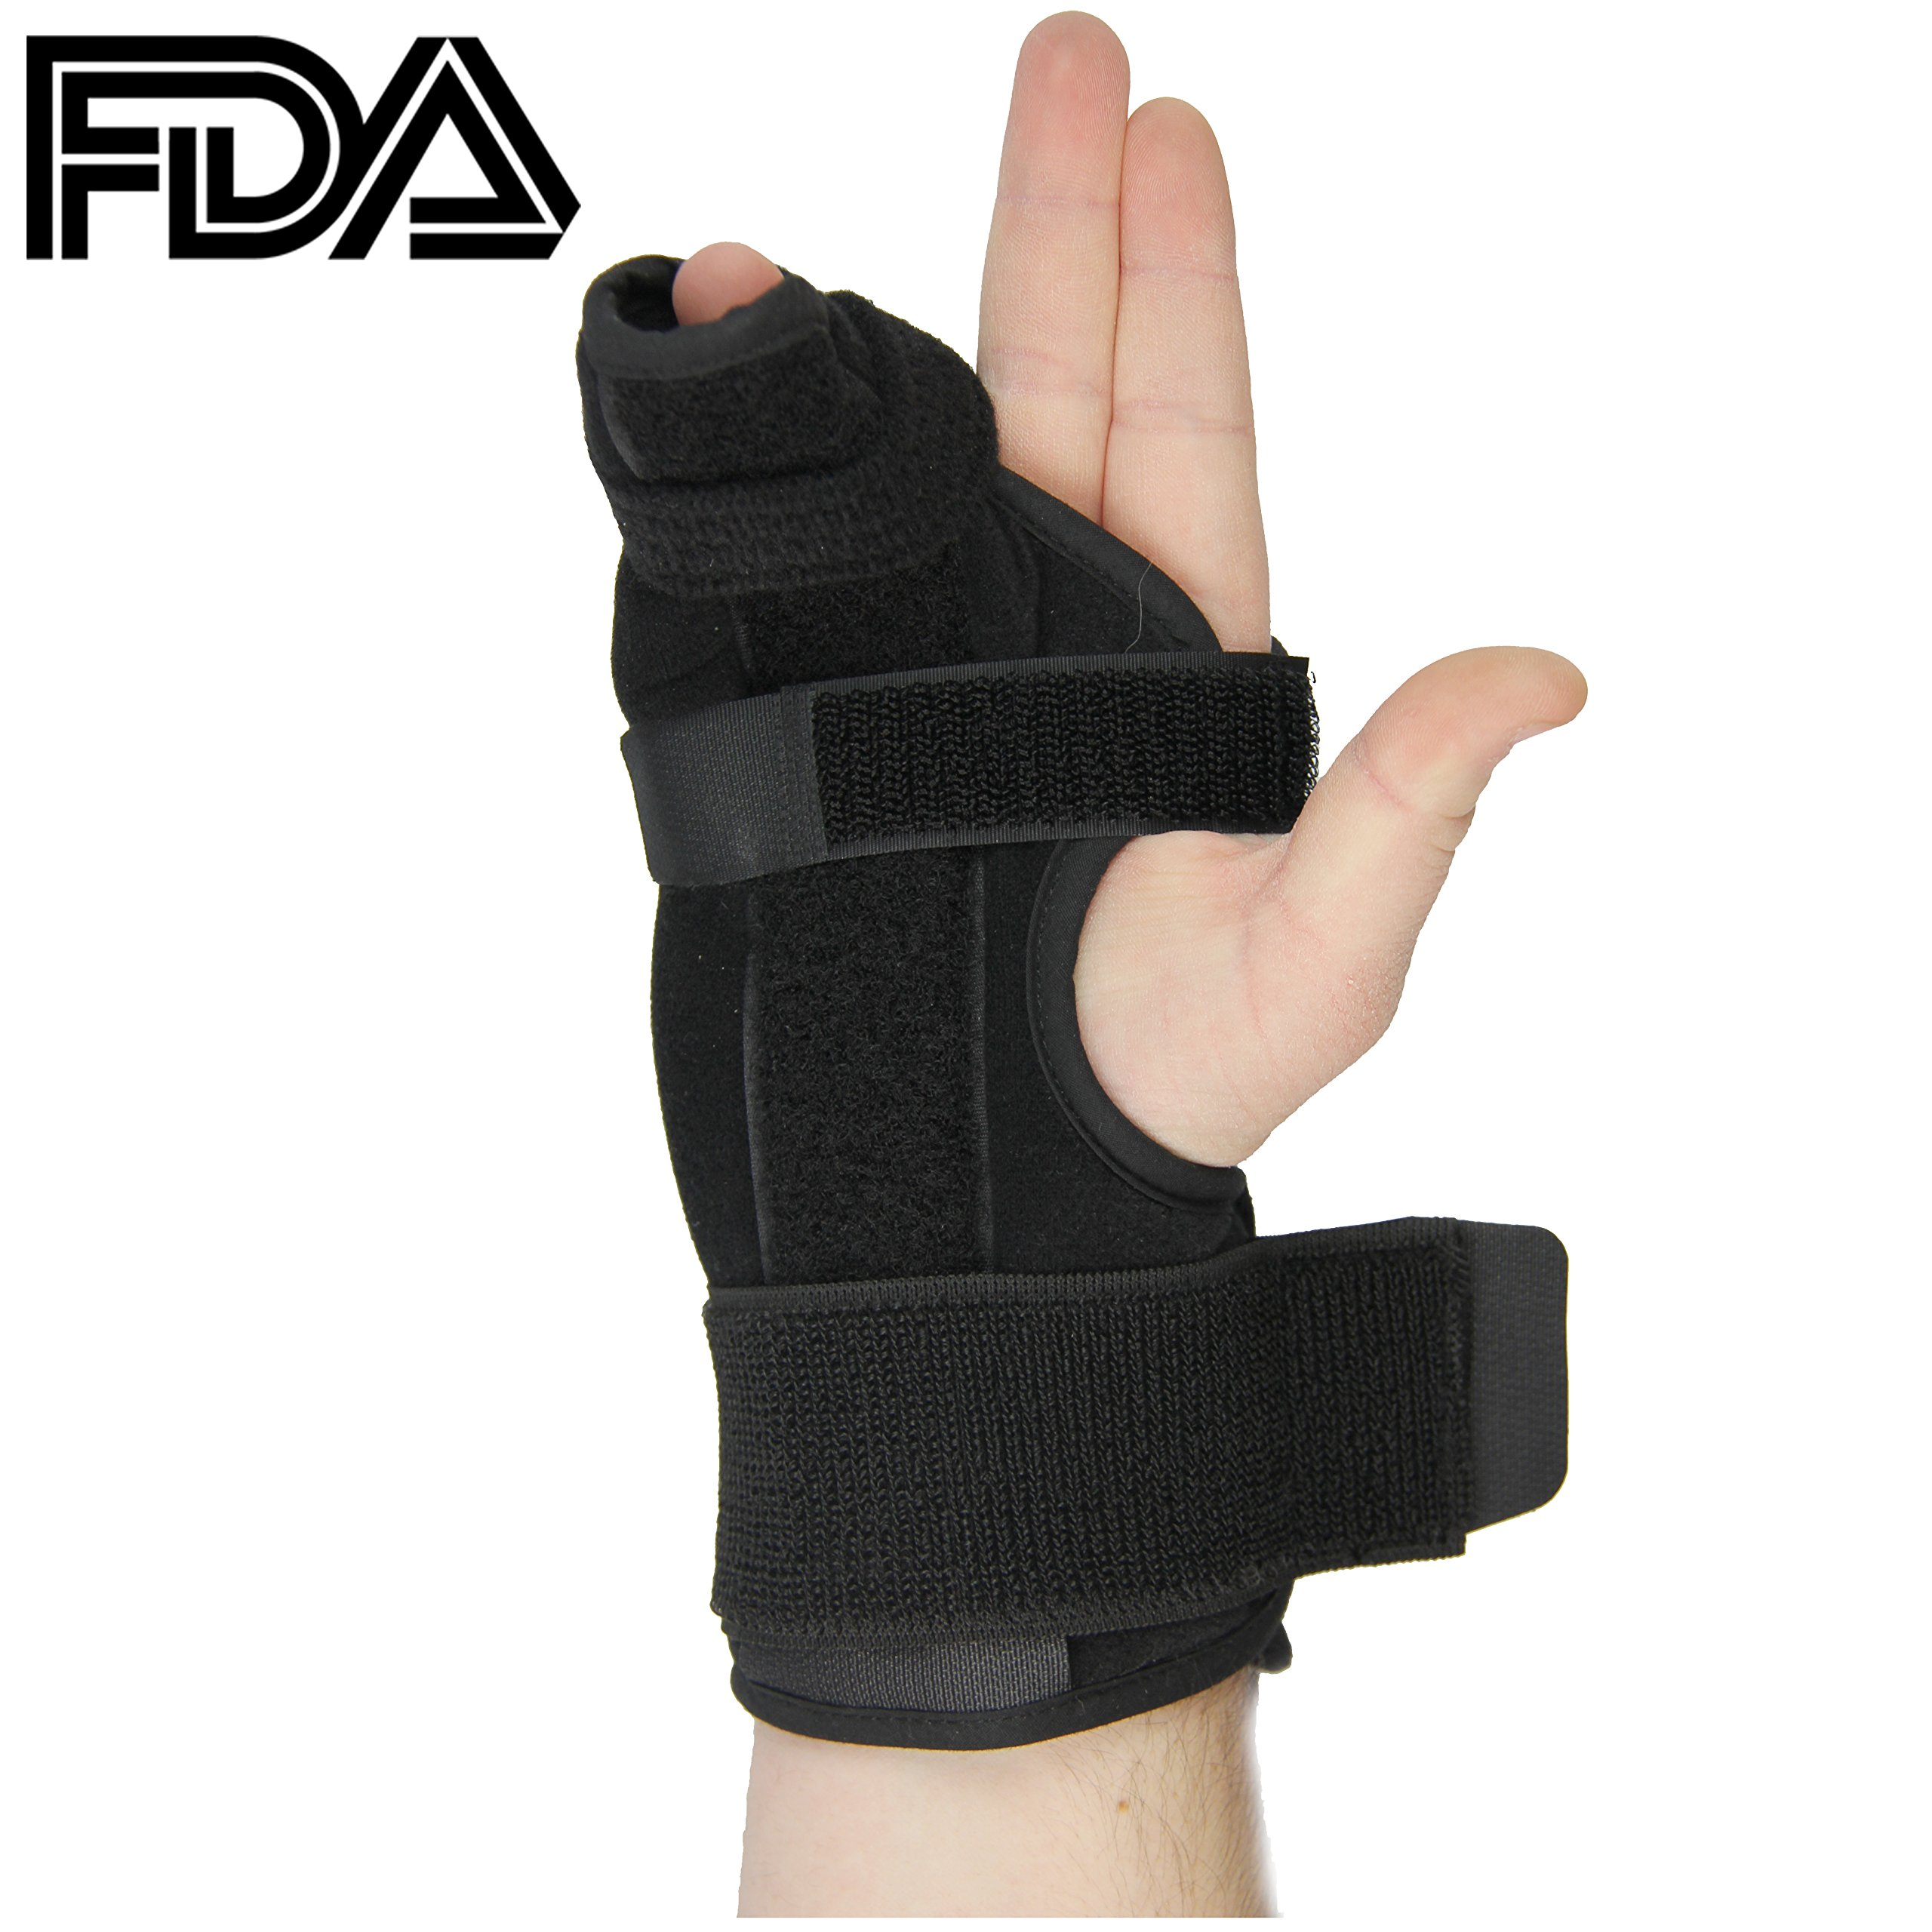 Metacarpal Splint- Boxer Splint for Right Hand, Easy to Put On and Take Off, Stabilizing Splint for Metacarpal and Hand Injuries, FDA Approved, a U.S. Solid Product (Medium)